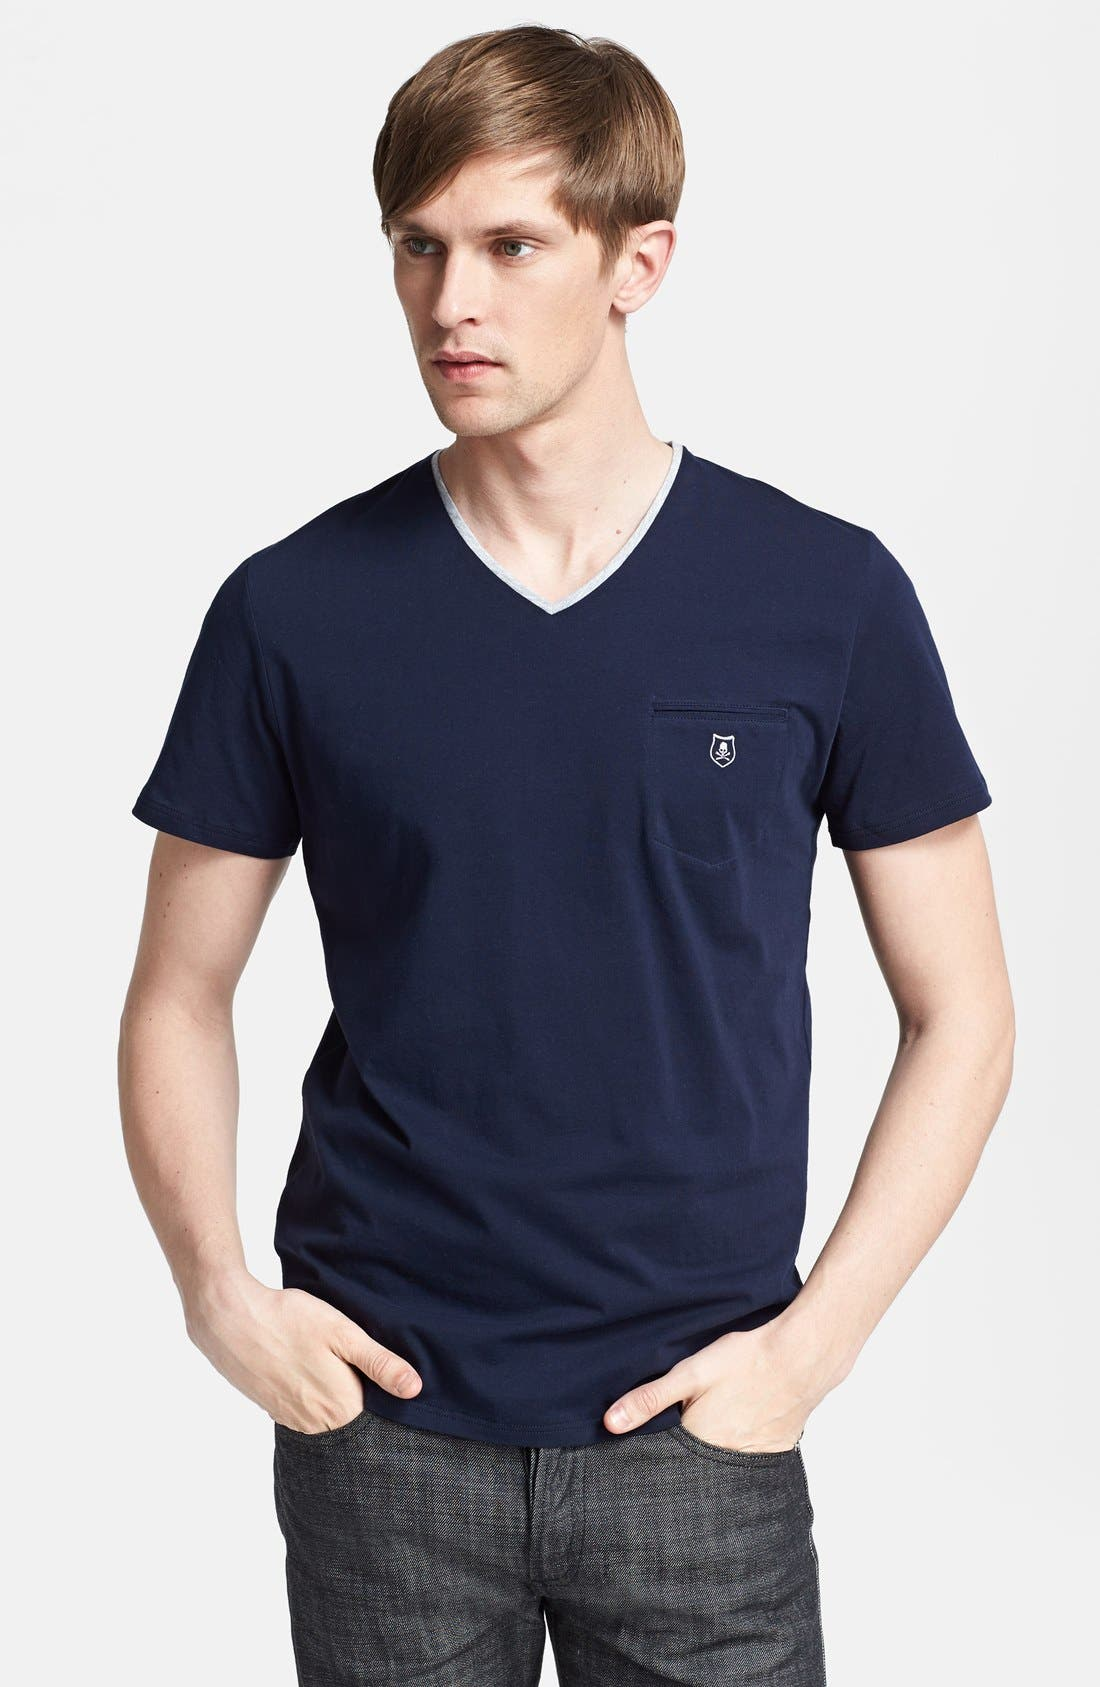 Alternate Image 1 Selected - The Kooples Logo Embroidered Pocket V-Neck T-Shirt